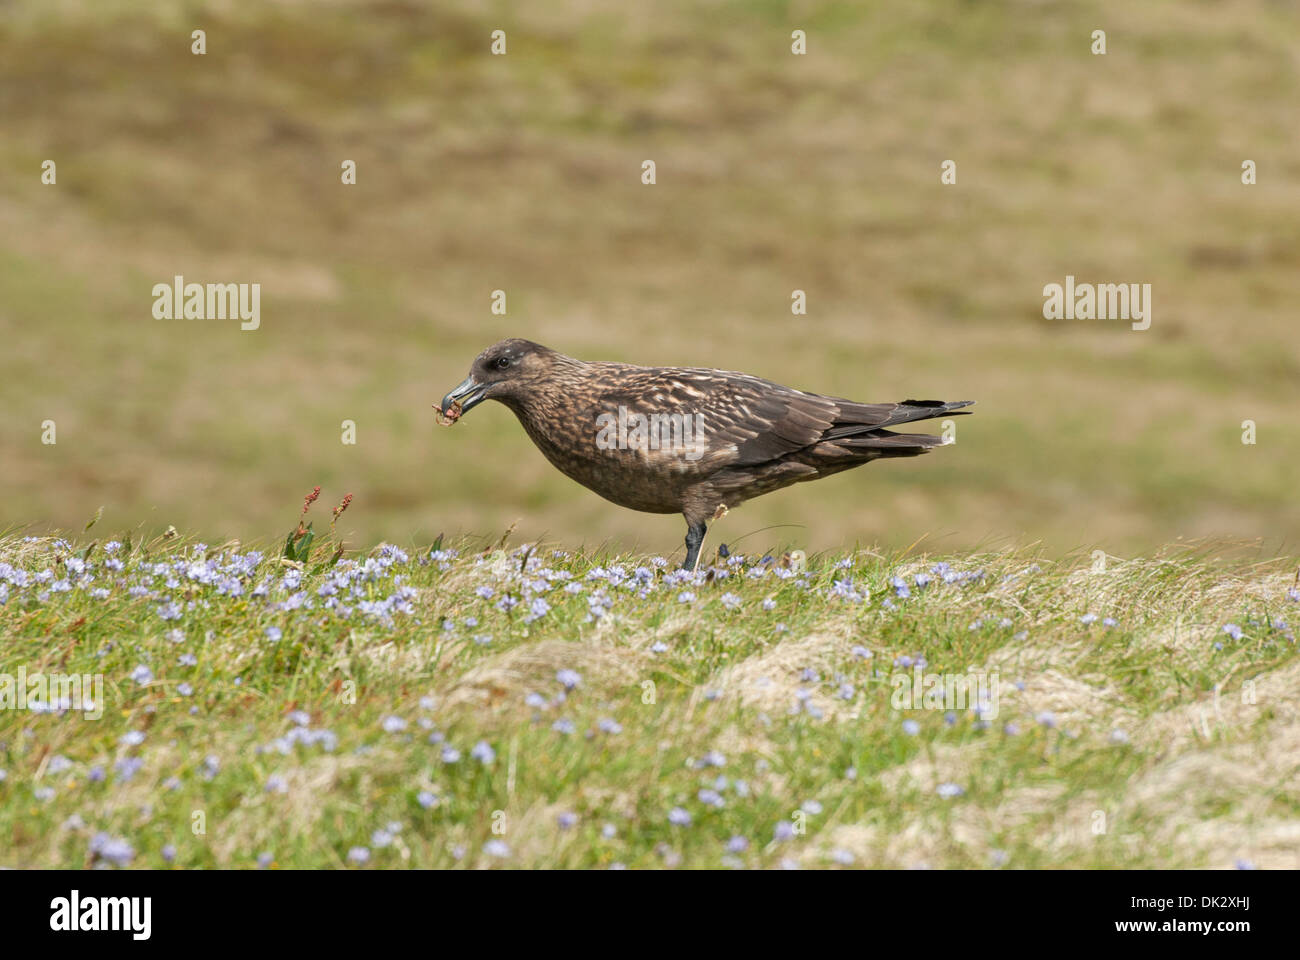 Great skua (Stercorarius skua) on breeding grounds, Orkney - Stock Image